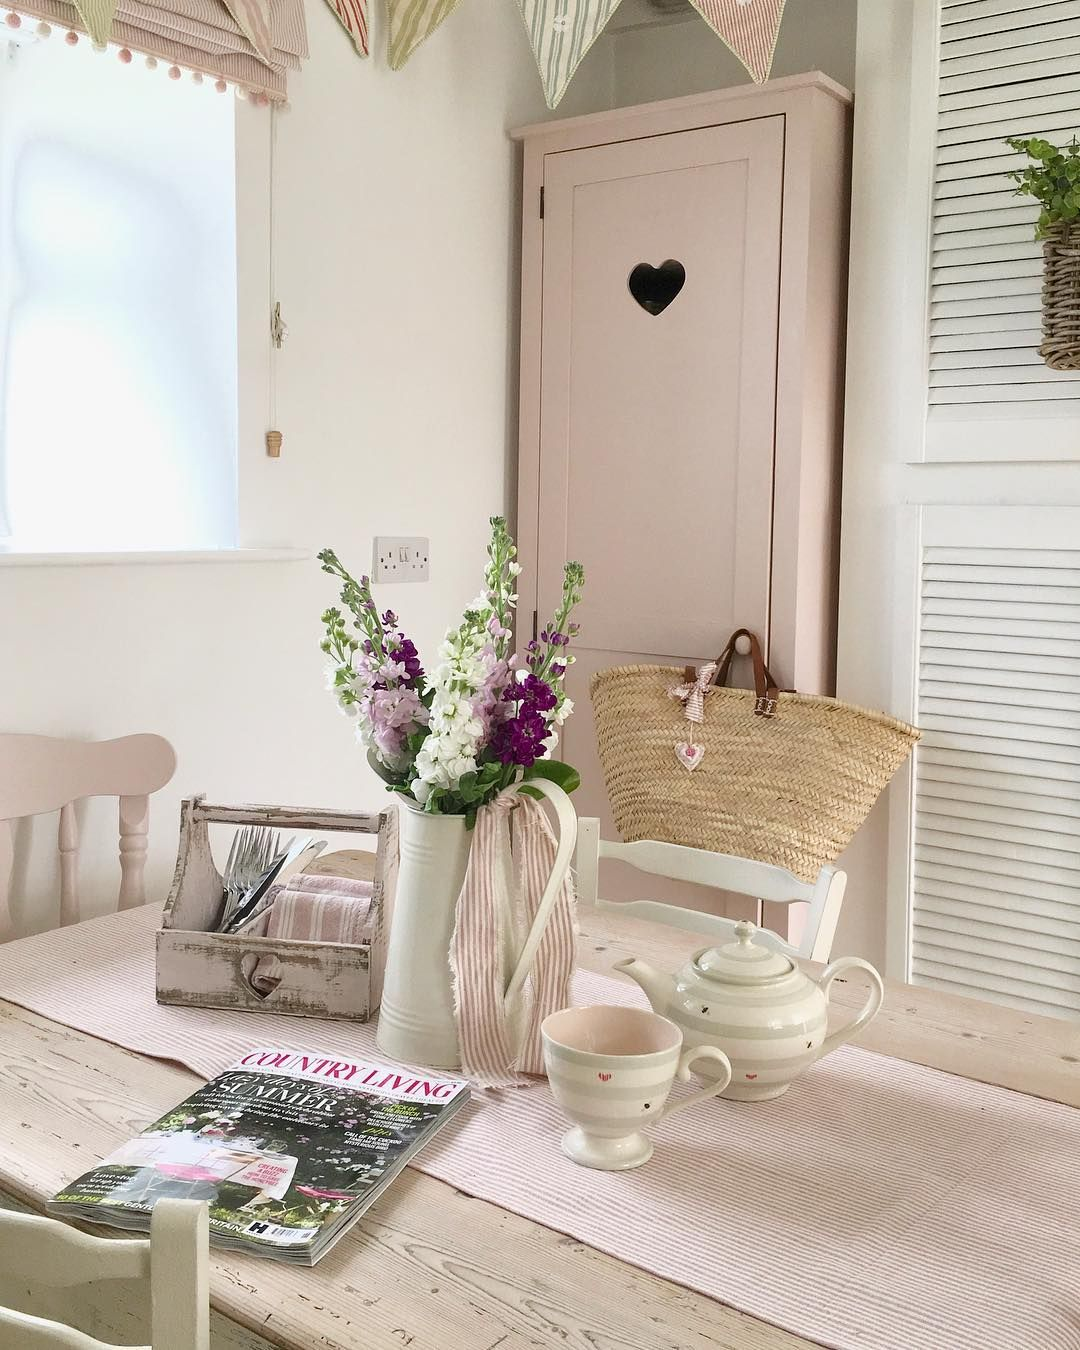 Countryhome Interior Design: Slow Start ... The Sun Is Shinning ... Having A Cup Of Tea